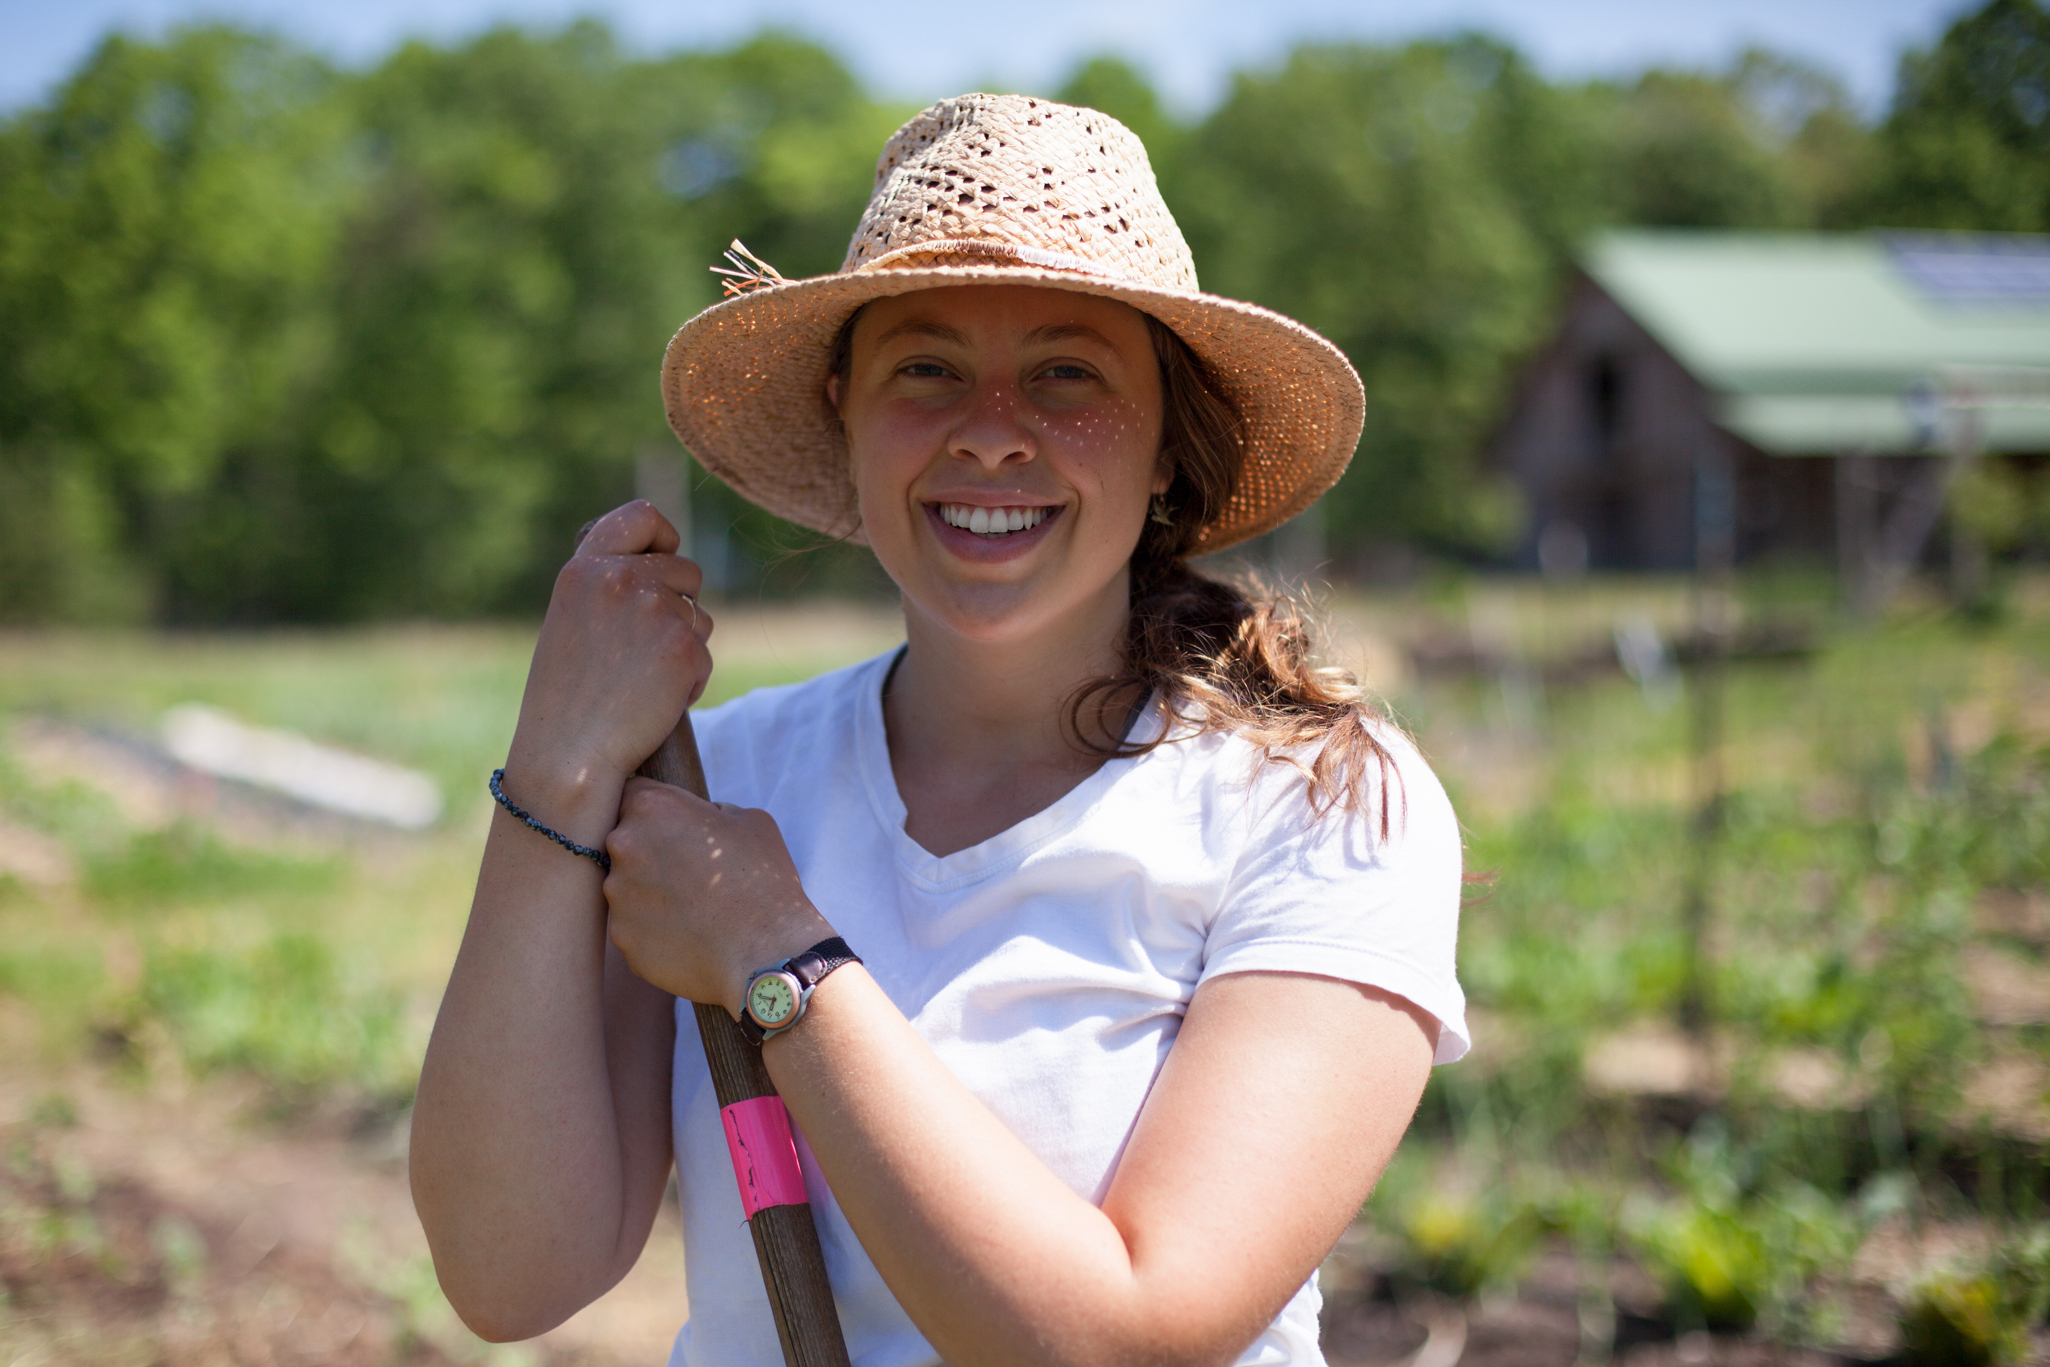 the-eco-institute-chapel-hill-nc-rising-earth-permaculture-environmental-education-gap-year-fellow-woman-farmer.jpg